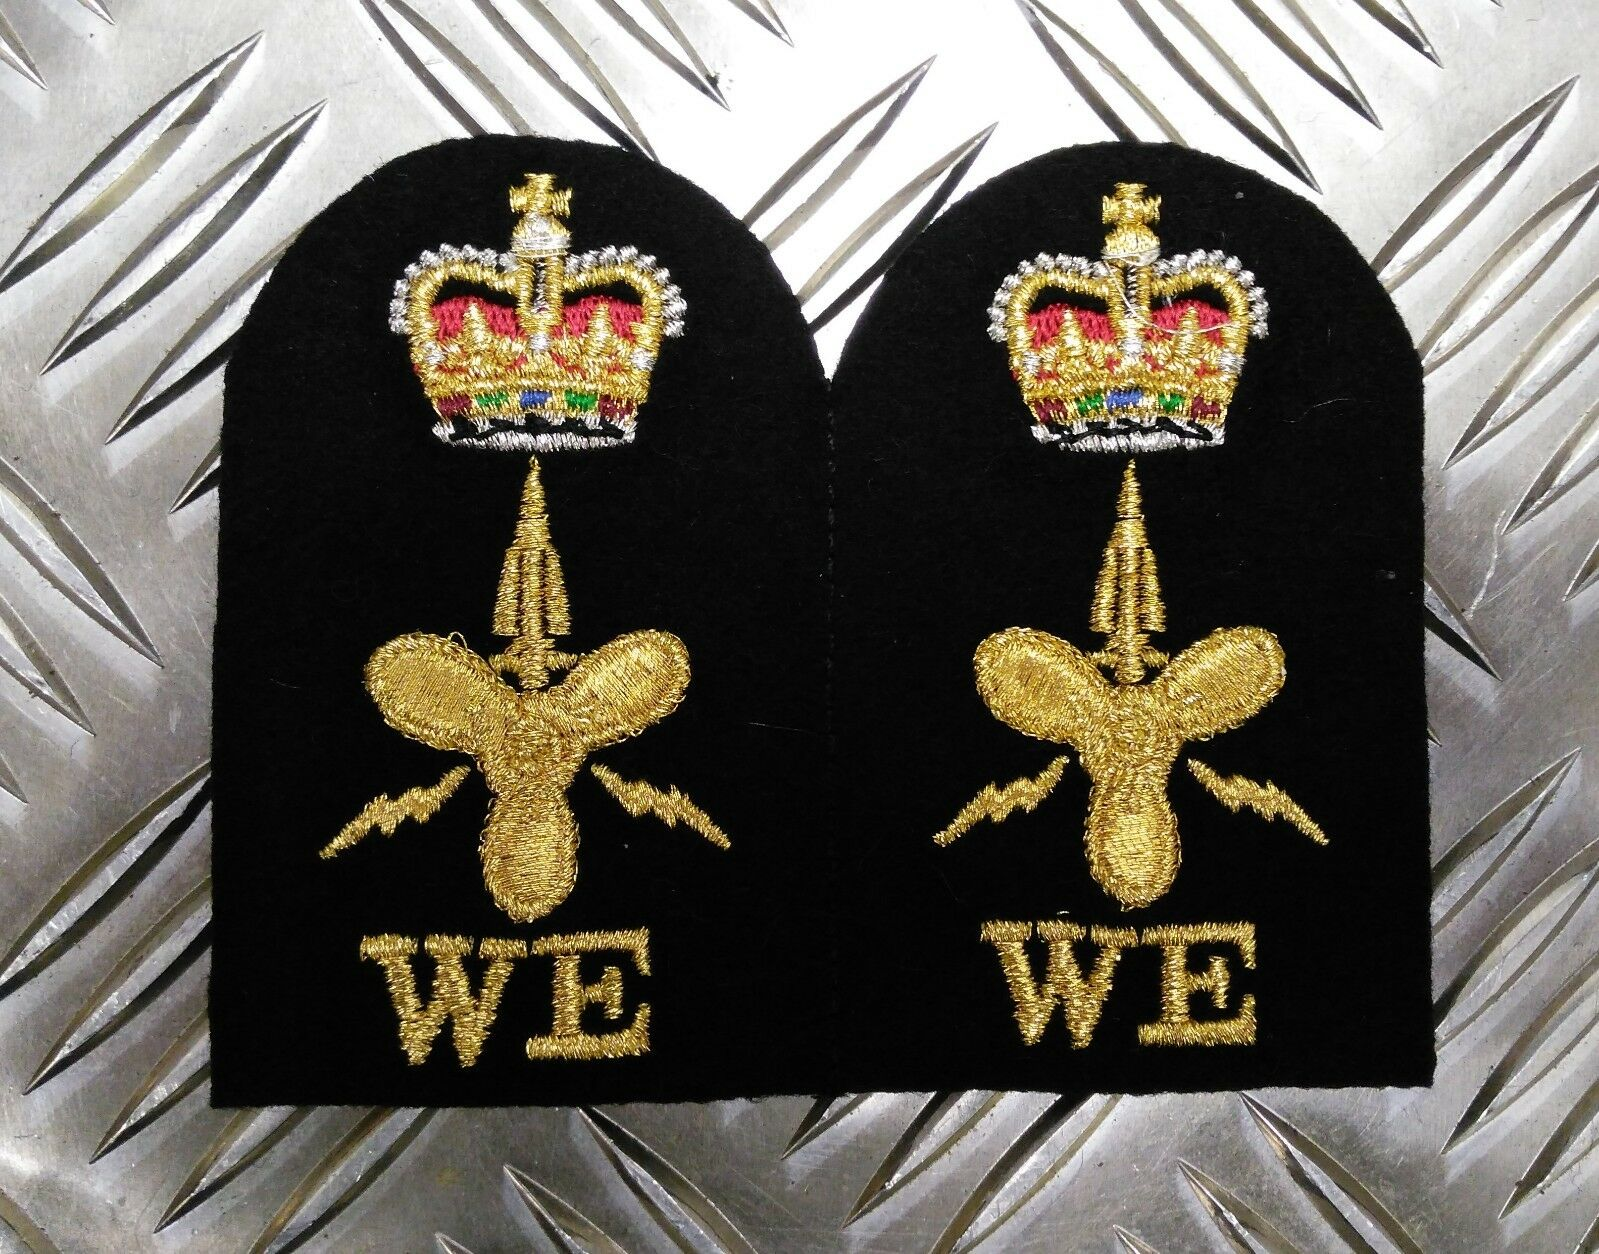 Authentique Royal Navy Brodé Assorti Branche Qualification Badges Divers Neuf Neuf Neuf ba269f